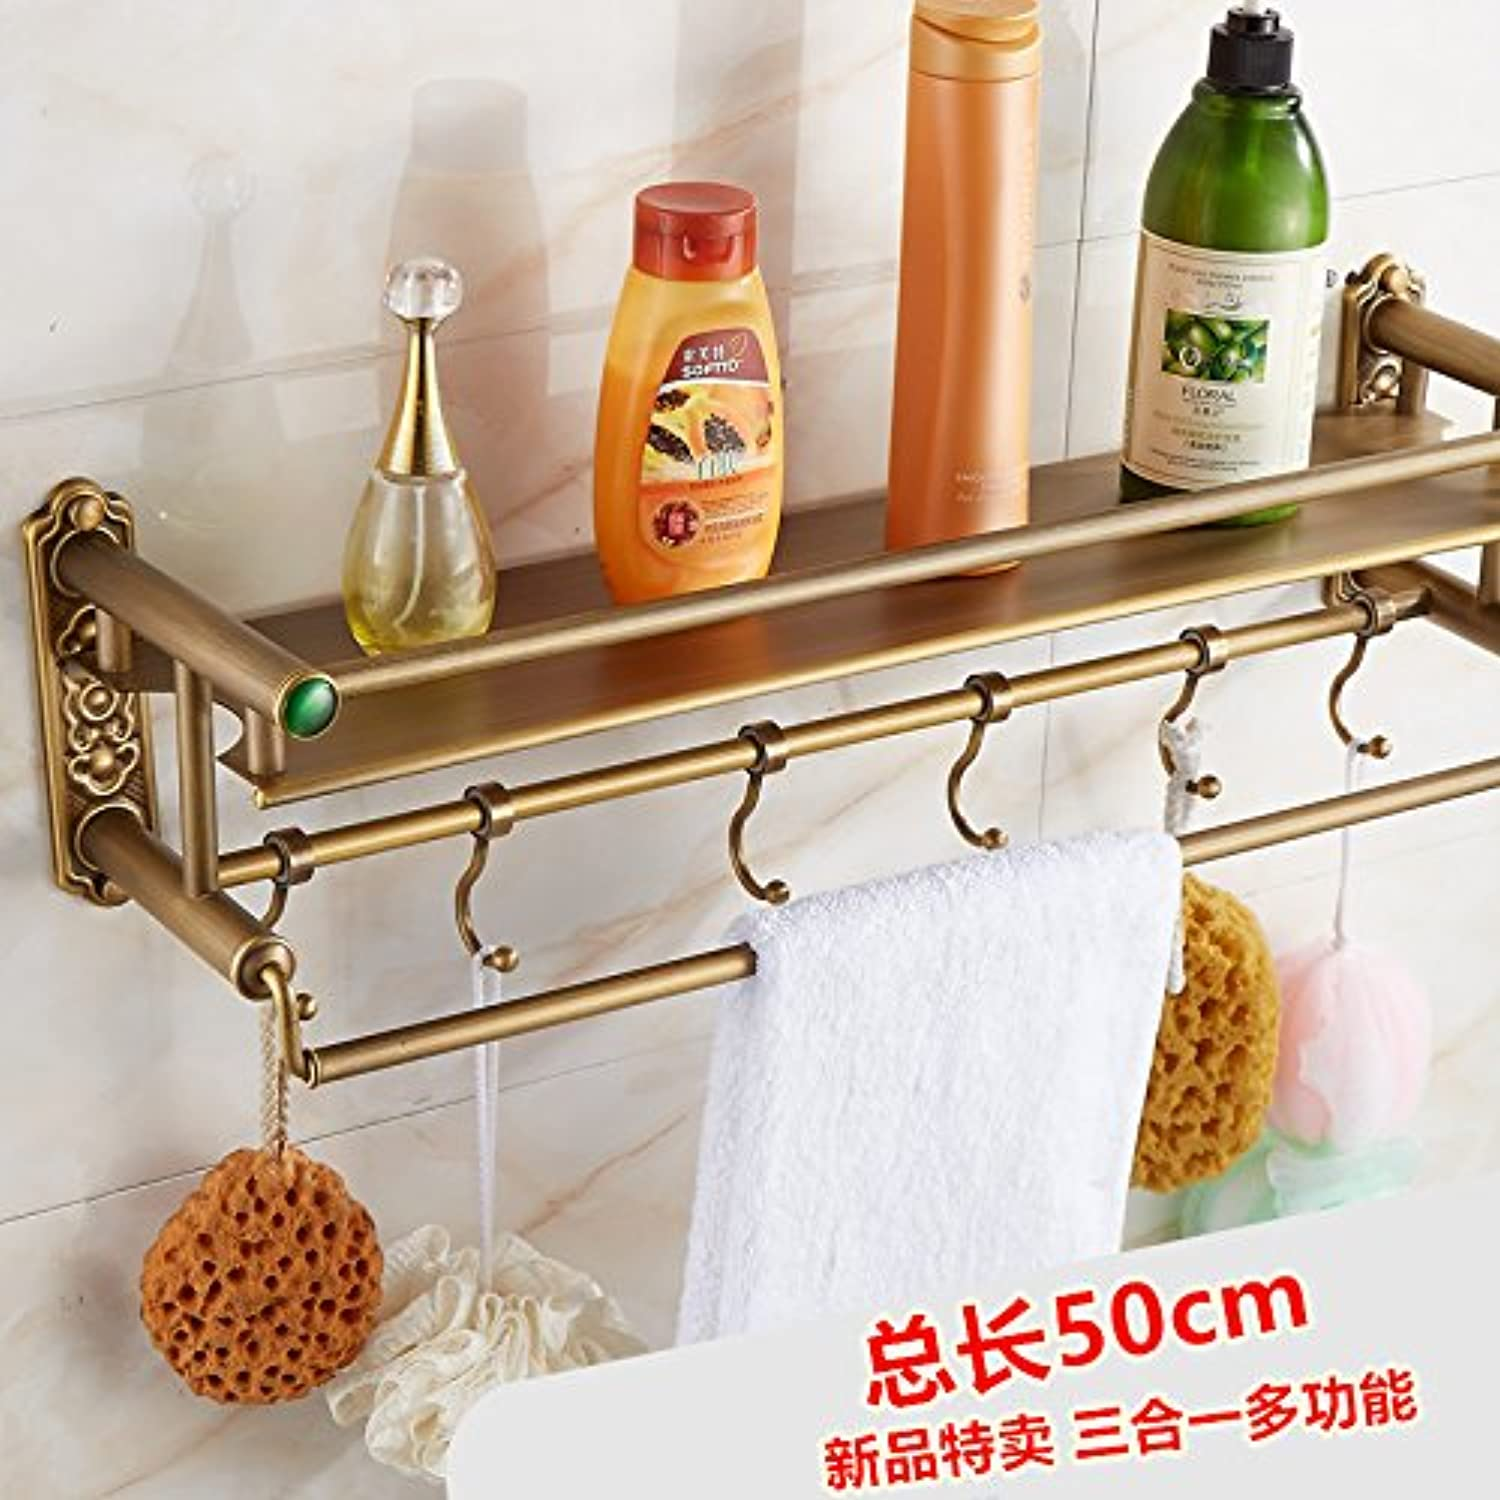 European antique copper bathroom double glass shelf,50cm-@wei